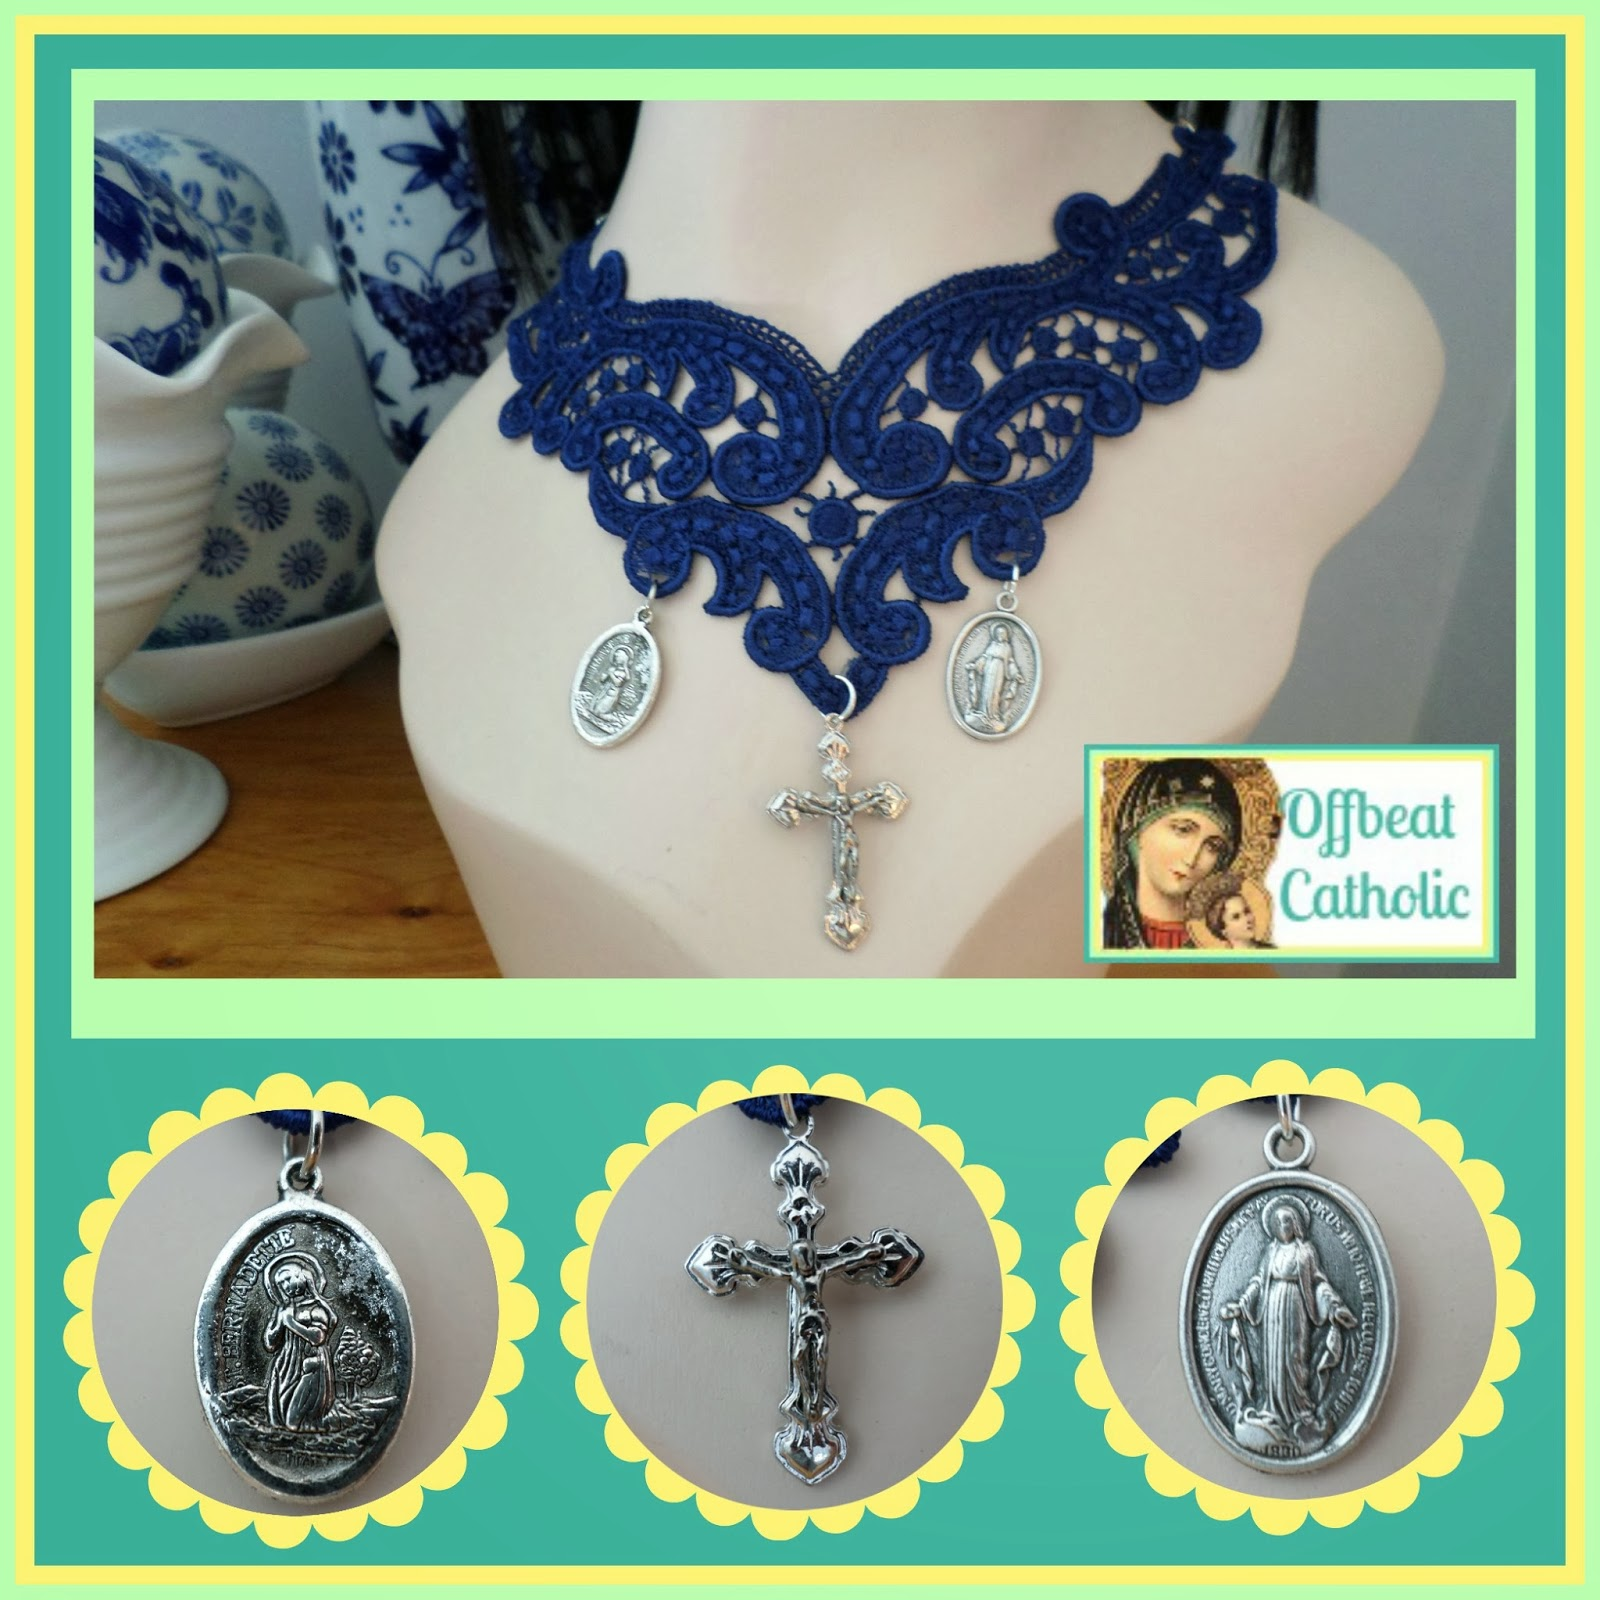 https://www.etsy.com/shop/OffbeatCatholic